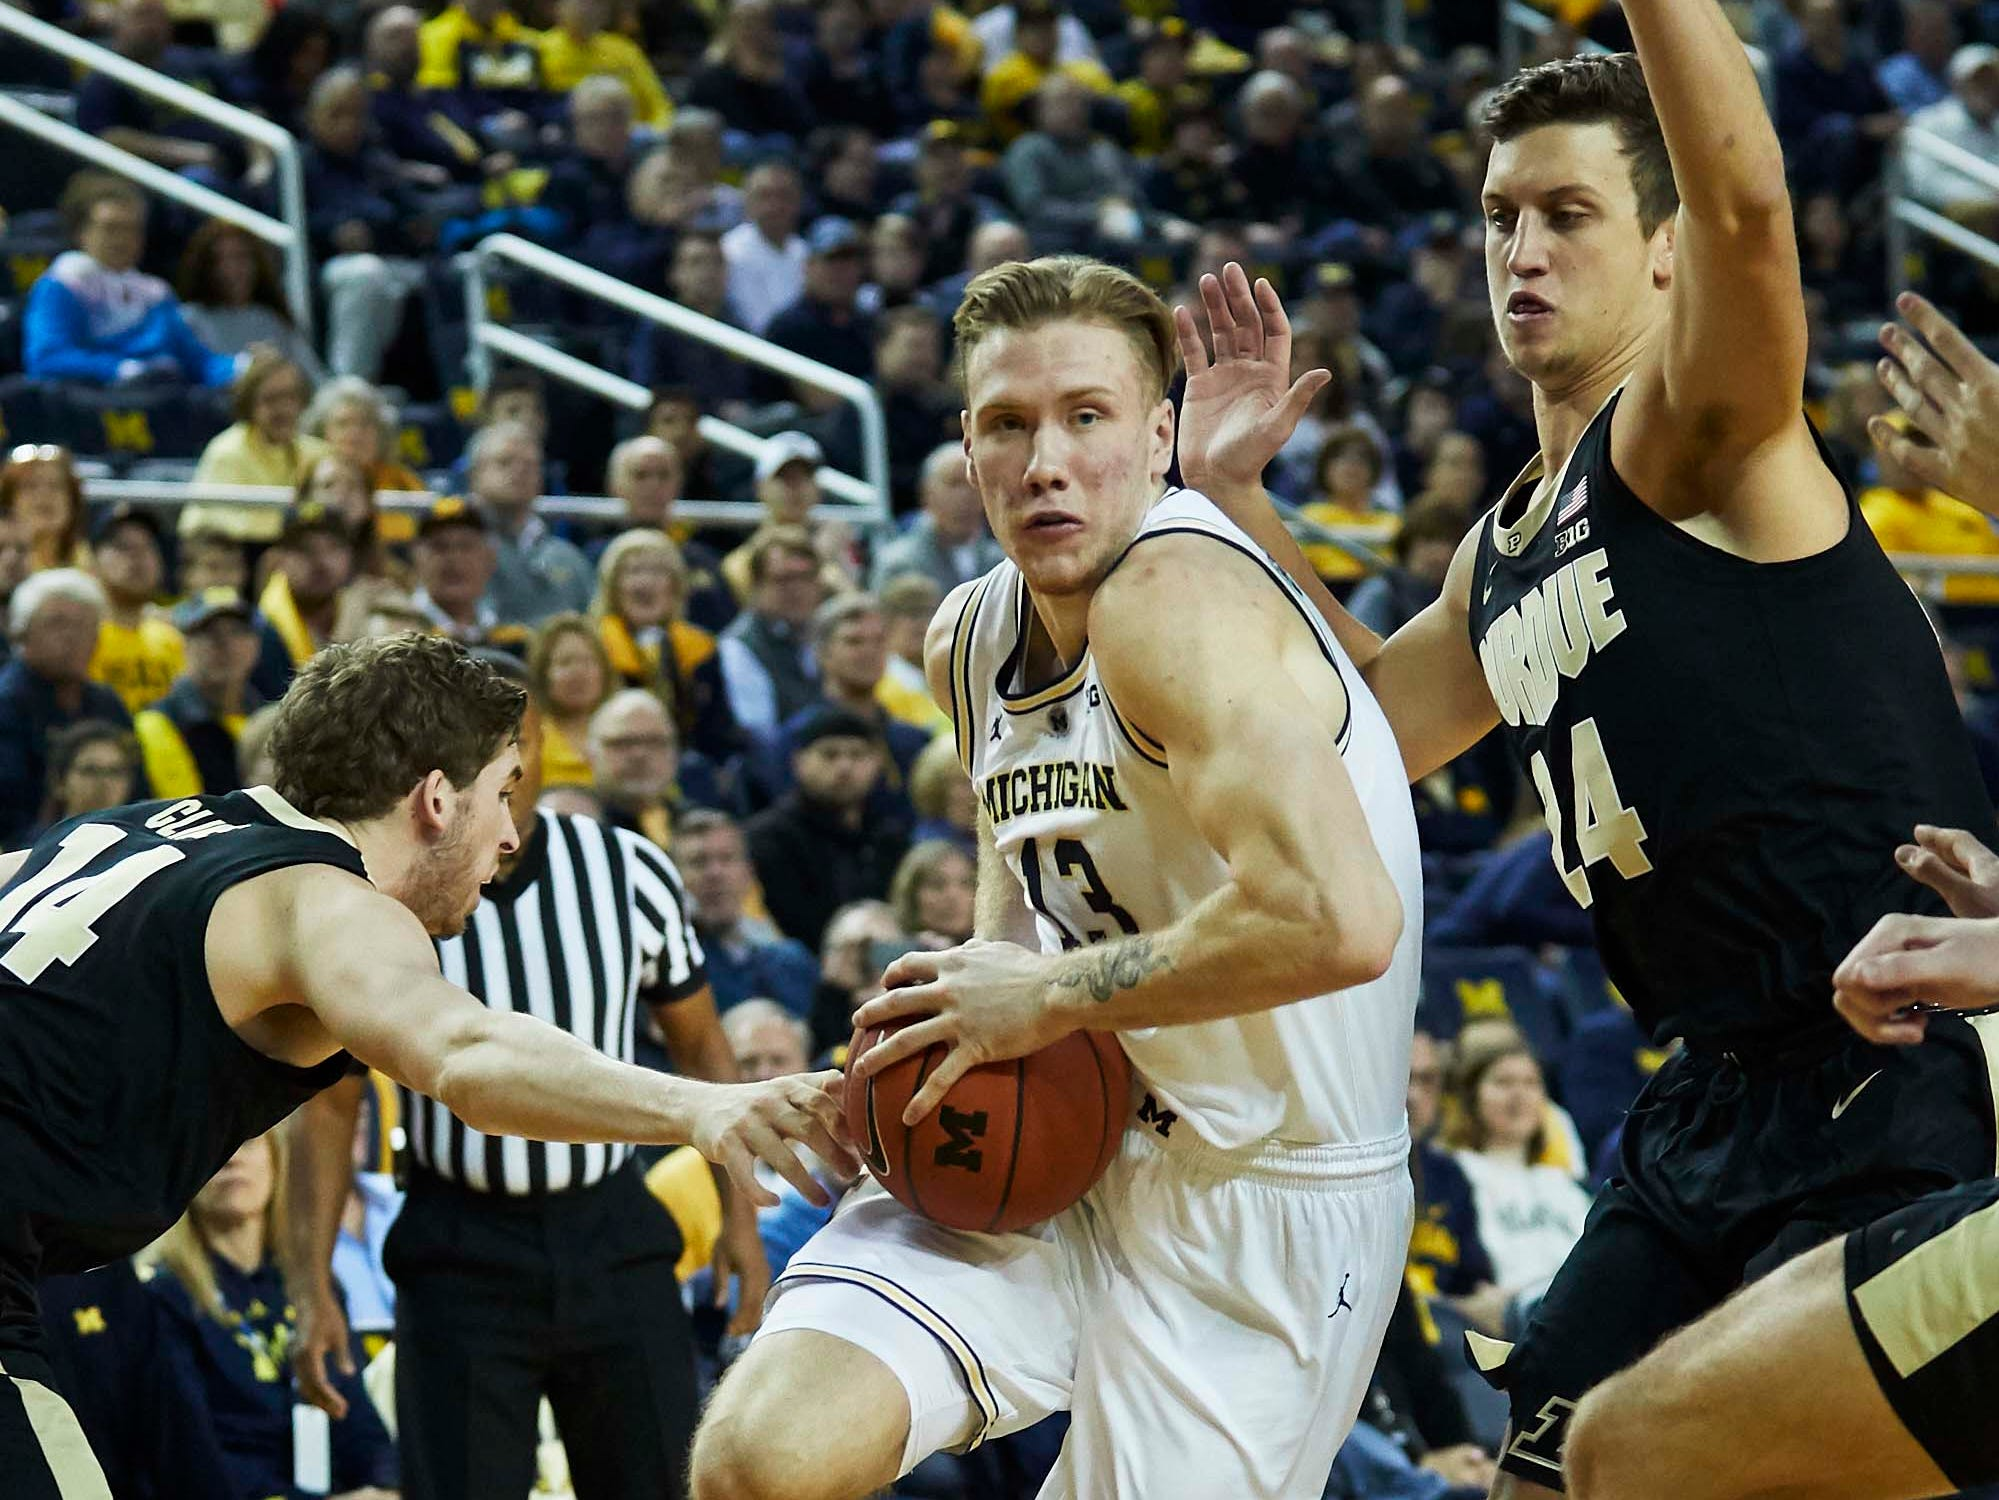 Dec 1, 2018; Ann Arbor, MI, USA; Michigan Wolverines forward Ignas Brazdeikis (13) dribbles on Purdue Boilermakers guard Ryan Cline (14) and forward Grady Eifert (24) in the first half at Crisler Center. Mandatory Credit: Rick Osentoski-USA TODAY Sports